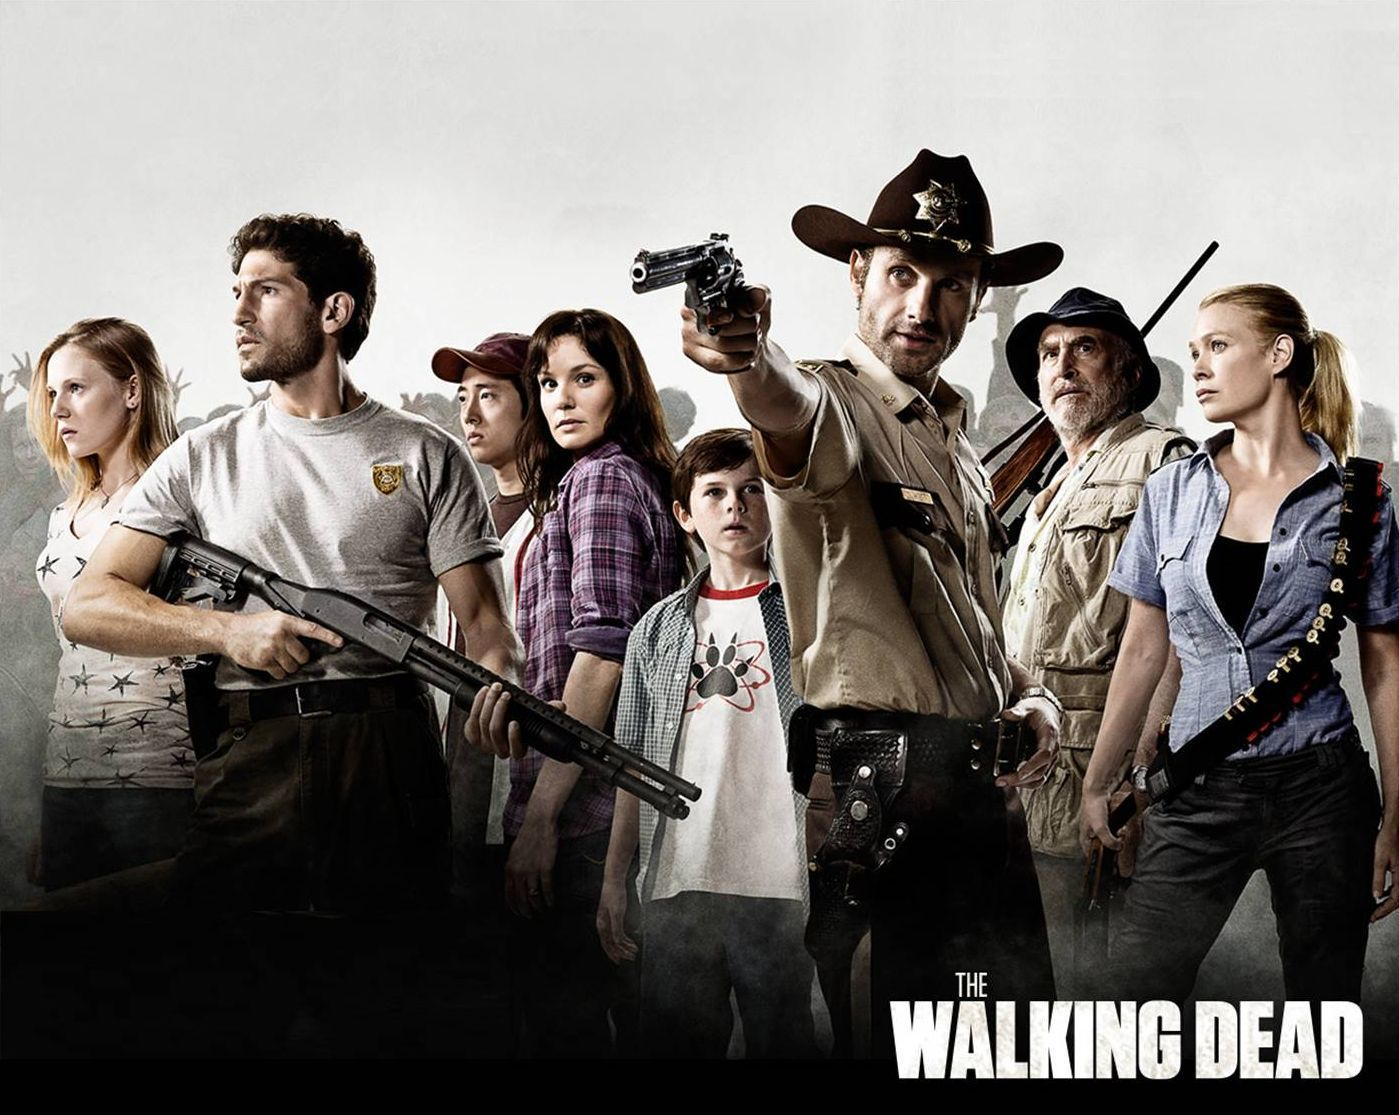 Wallpaper - THE WALKING DEAD - THE WALKING DEAD Photo (17323199 ...